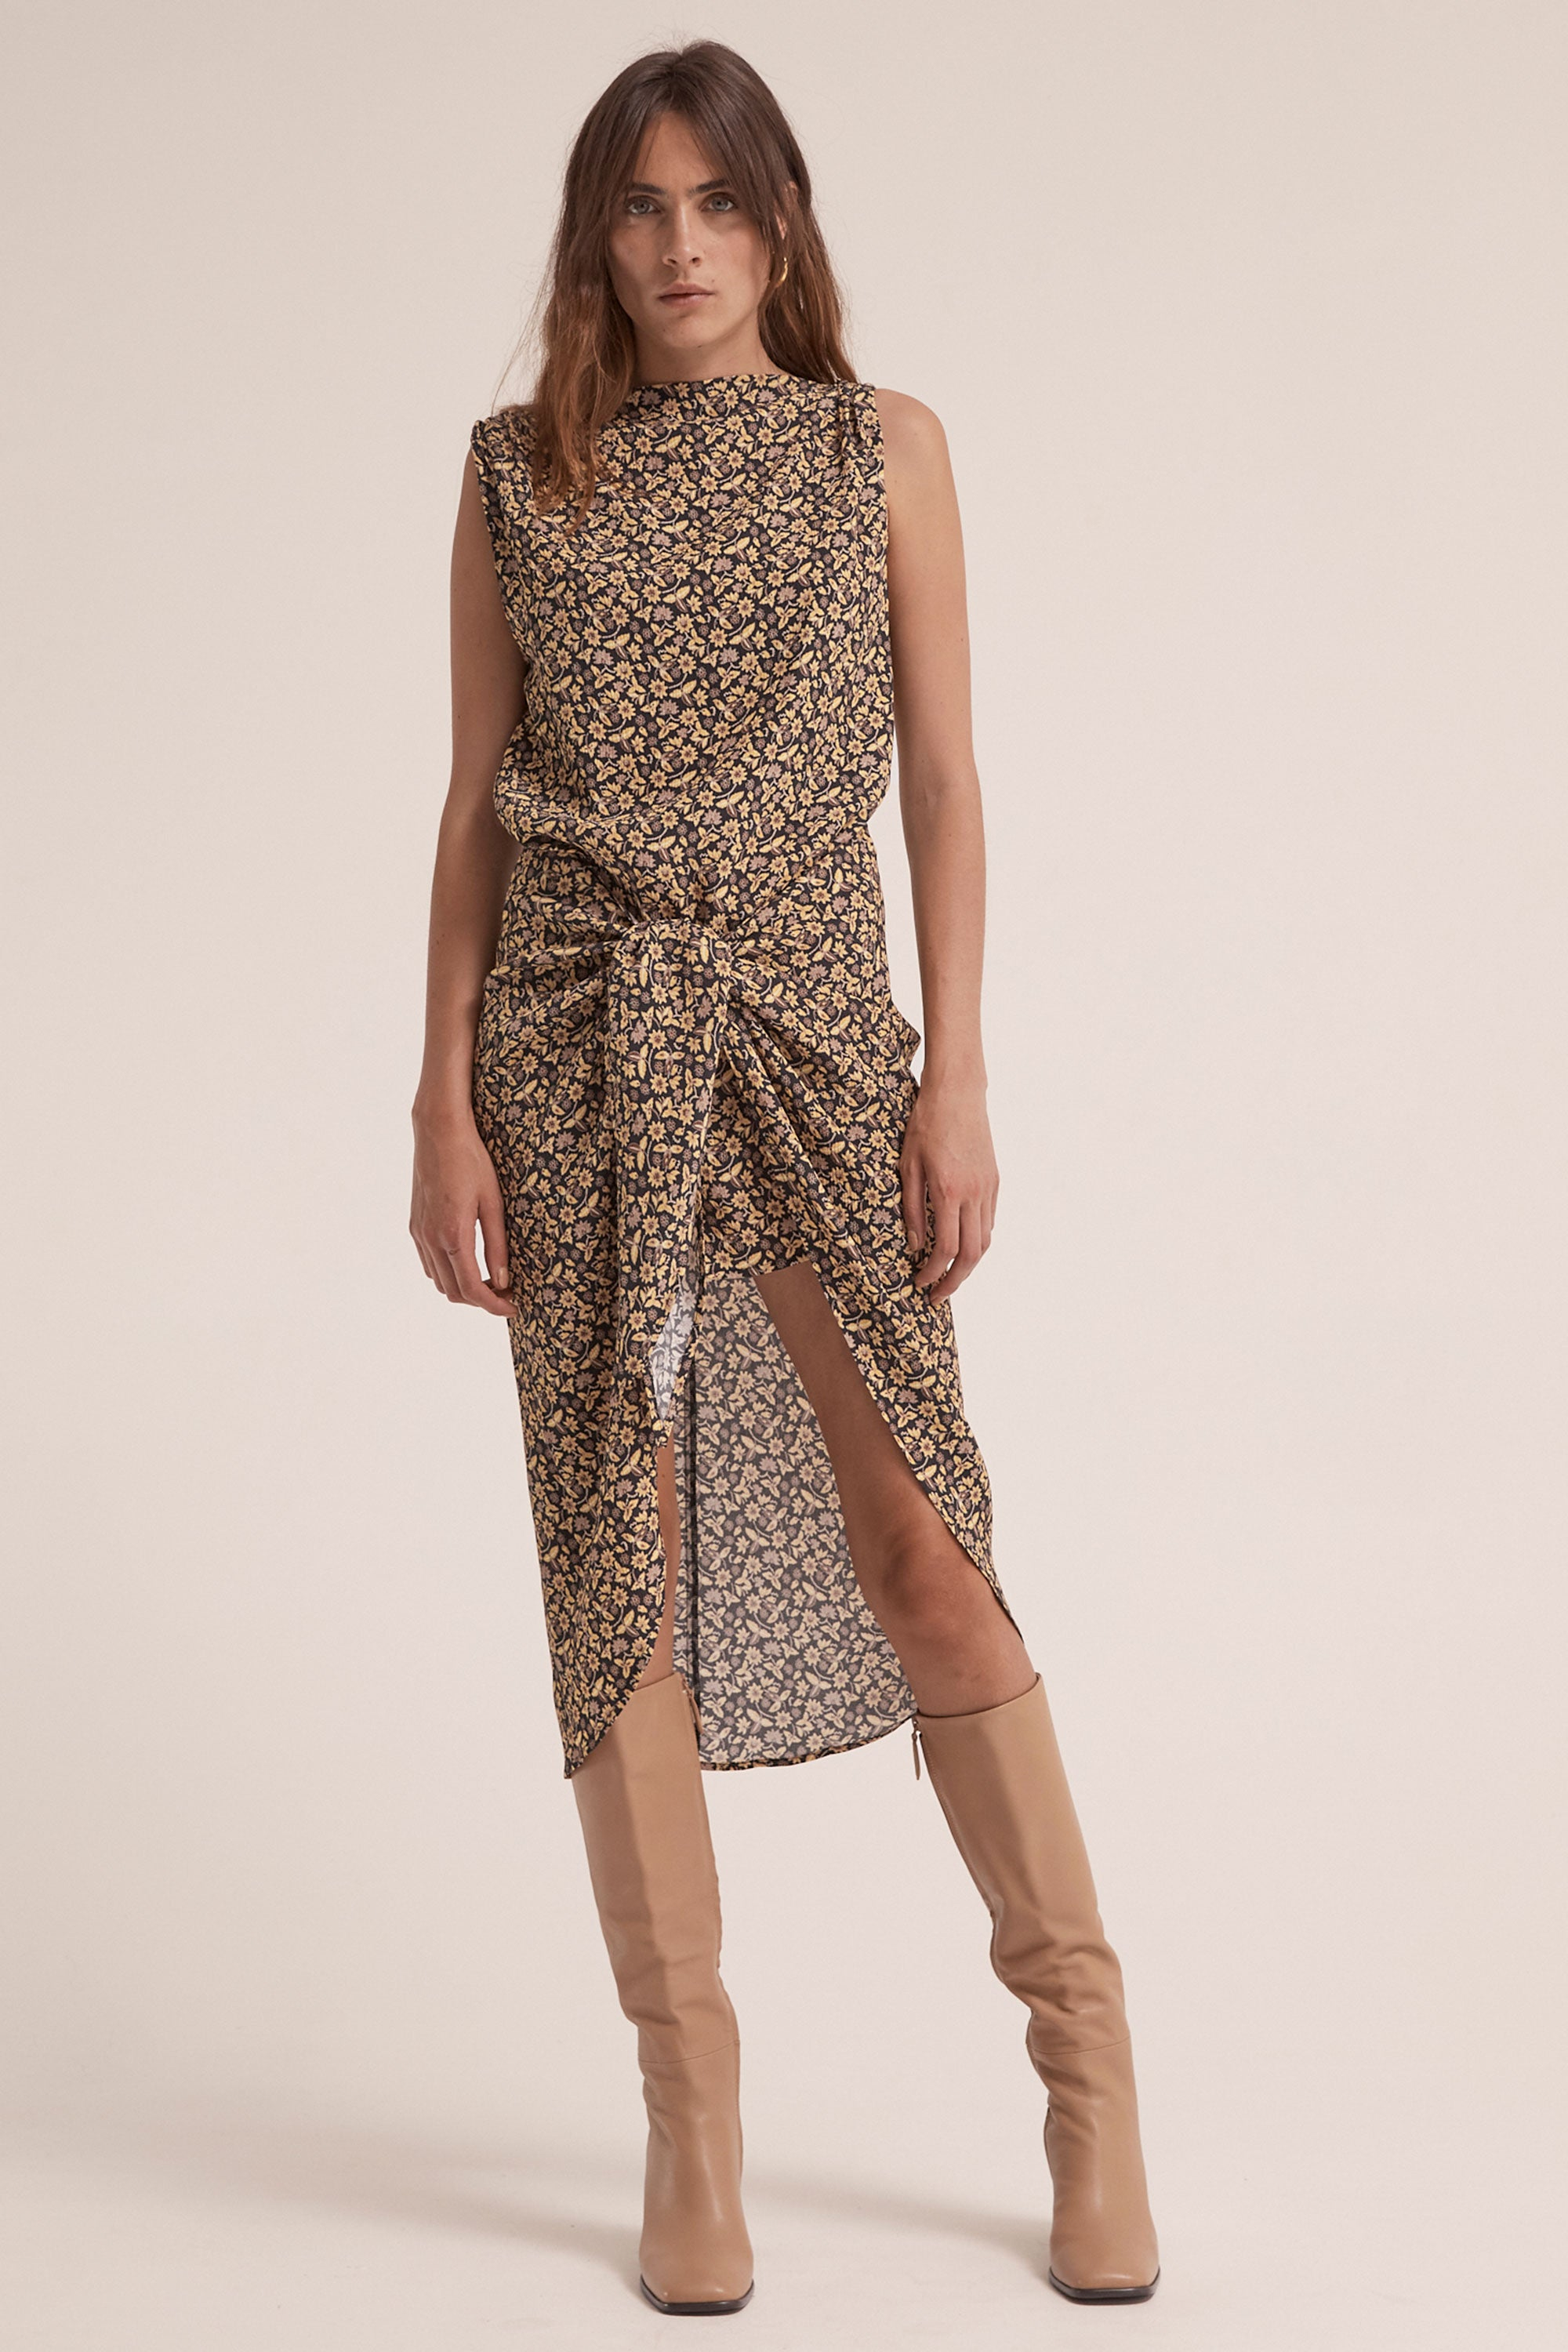 TAKE ME AWAY TIE MIDI DRESS | BATIK